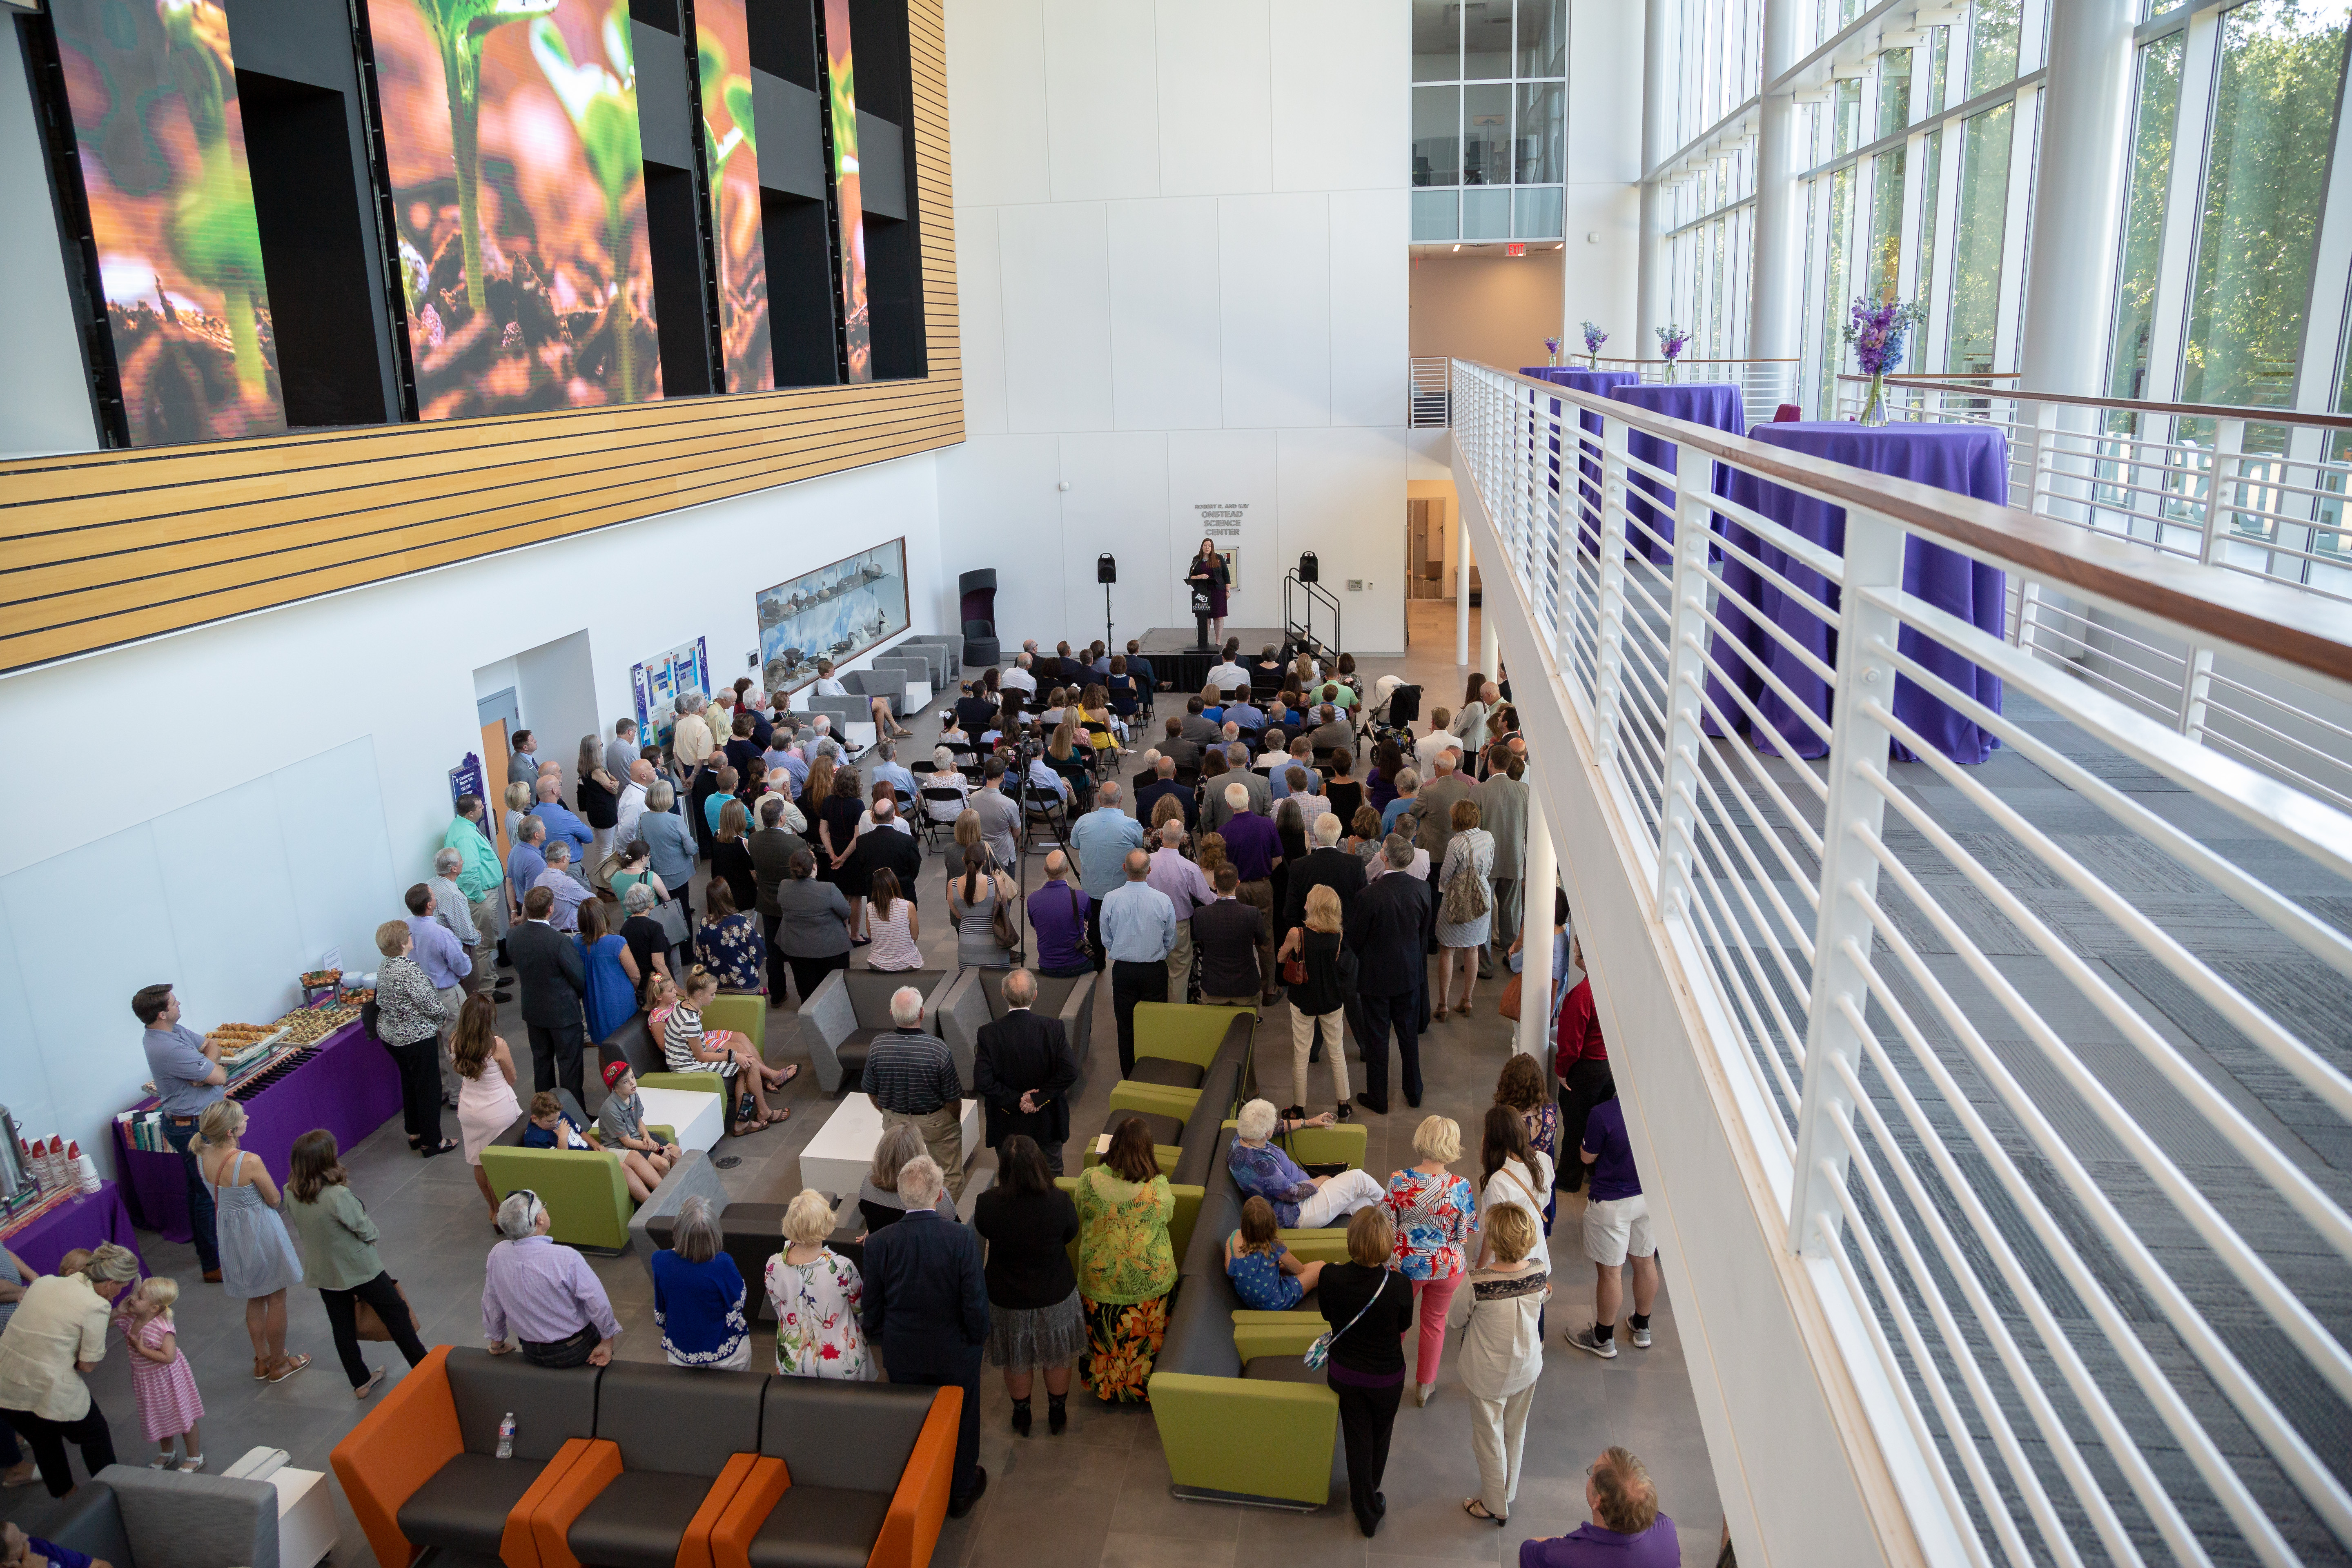 Guests gathered in Anthony Lobby at the new Robert R. and Kay Onstead Science Center for its grand opening celebration Aug. 24.